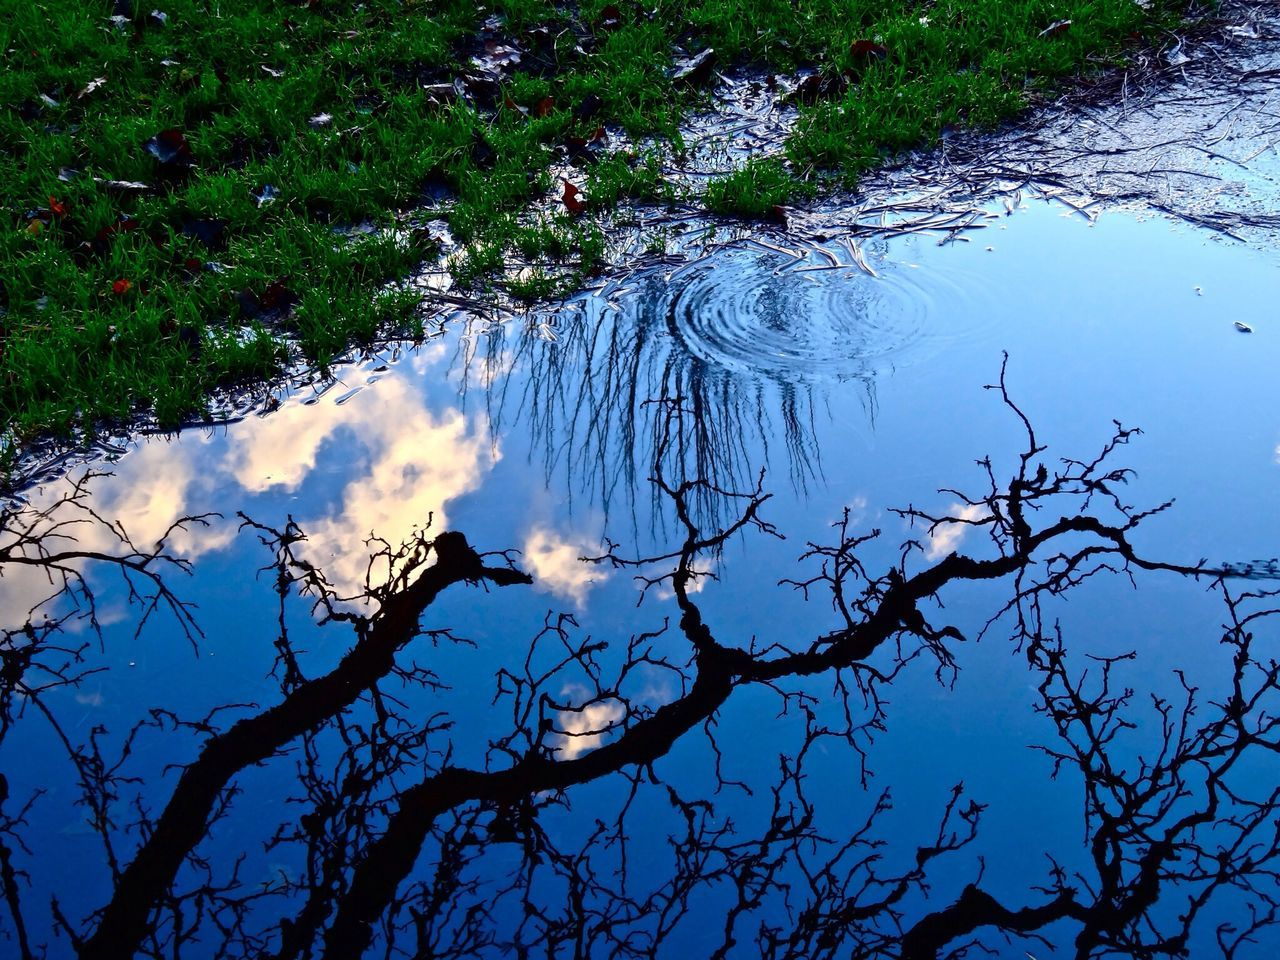 Sky_collection TreePorn Reflection Time To Reflect